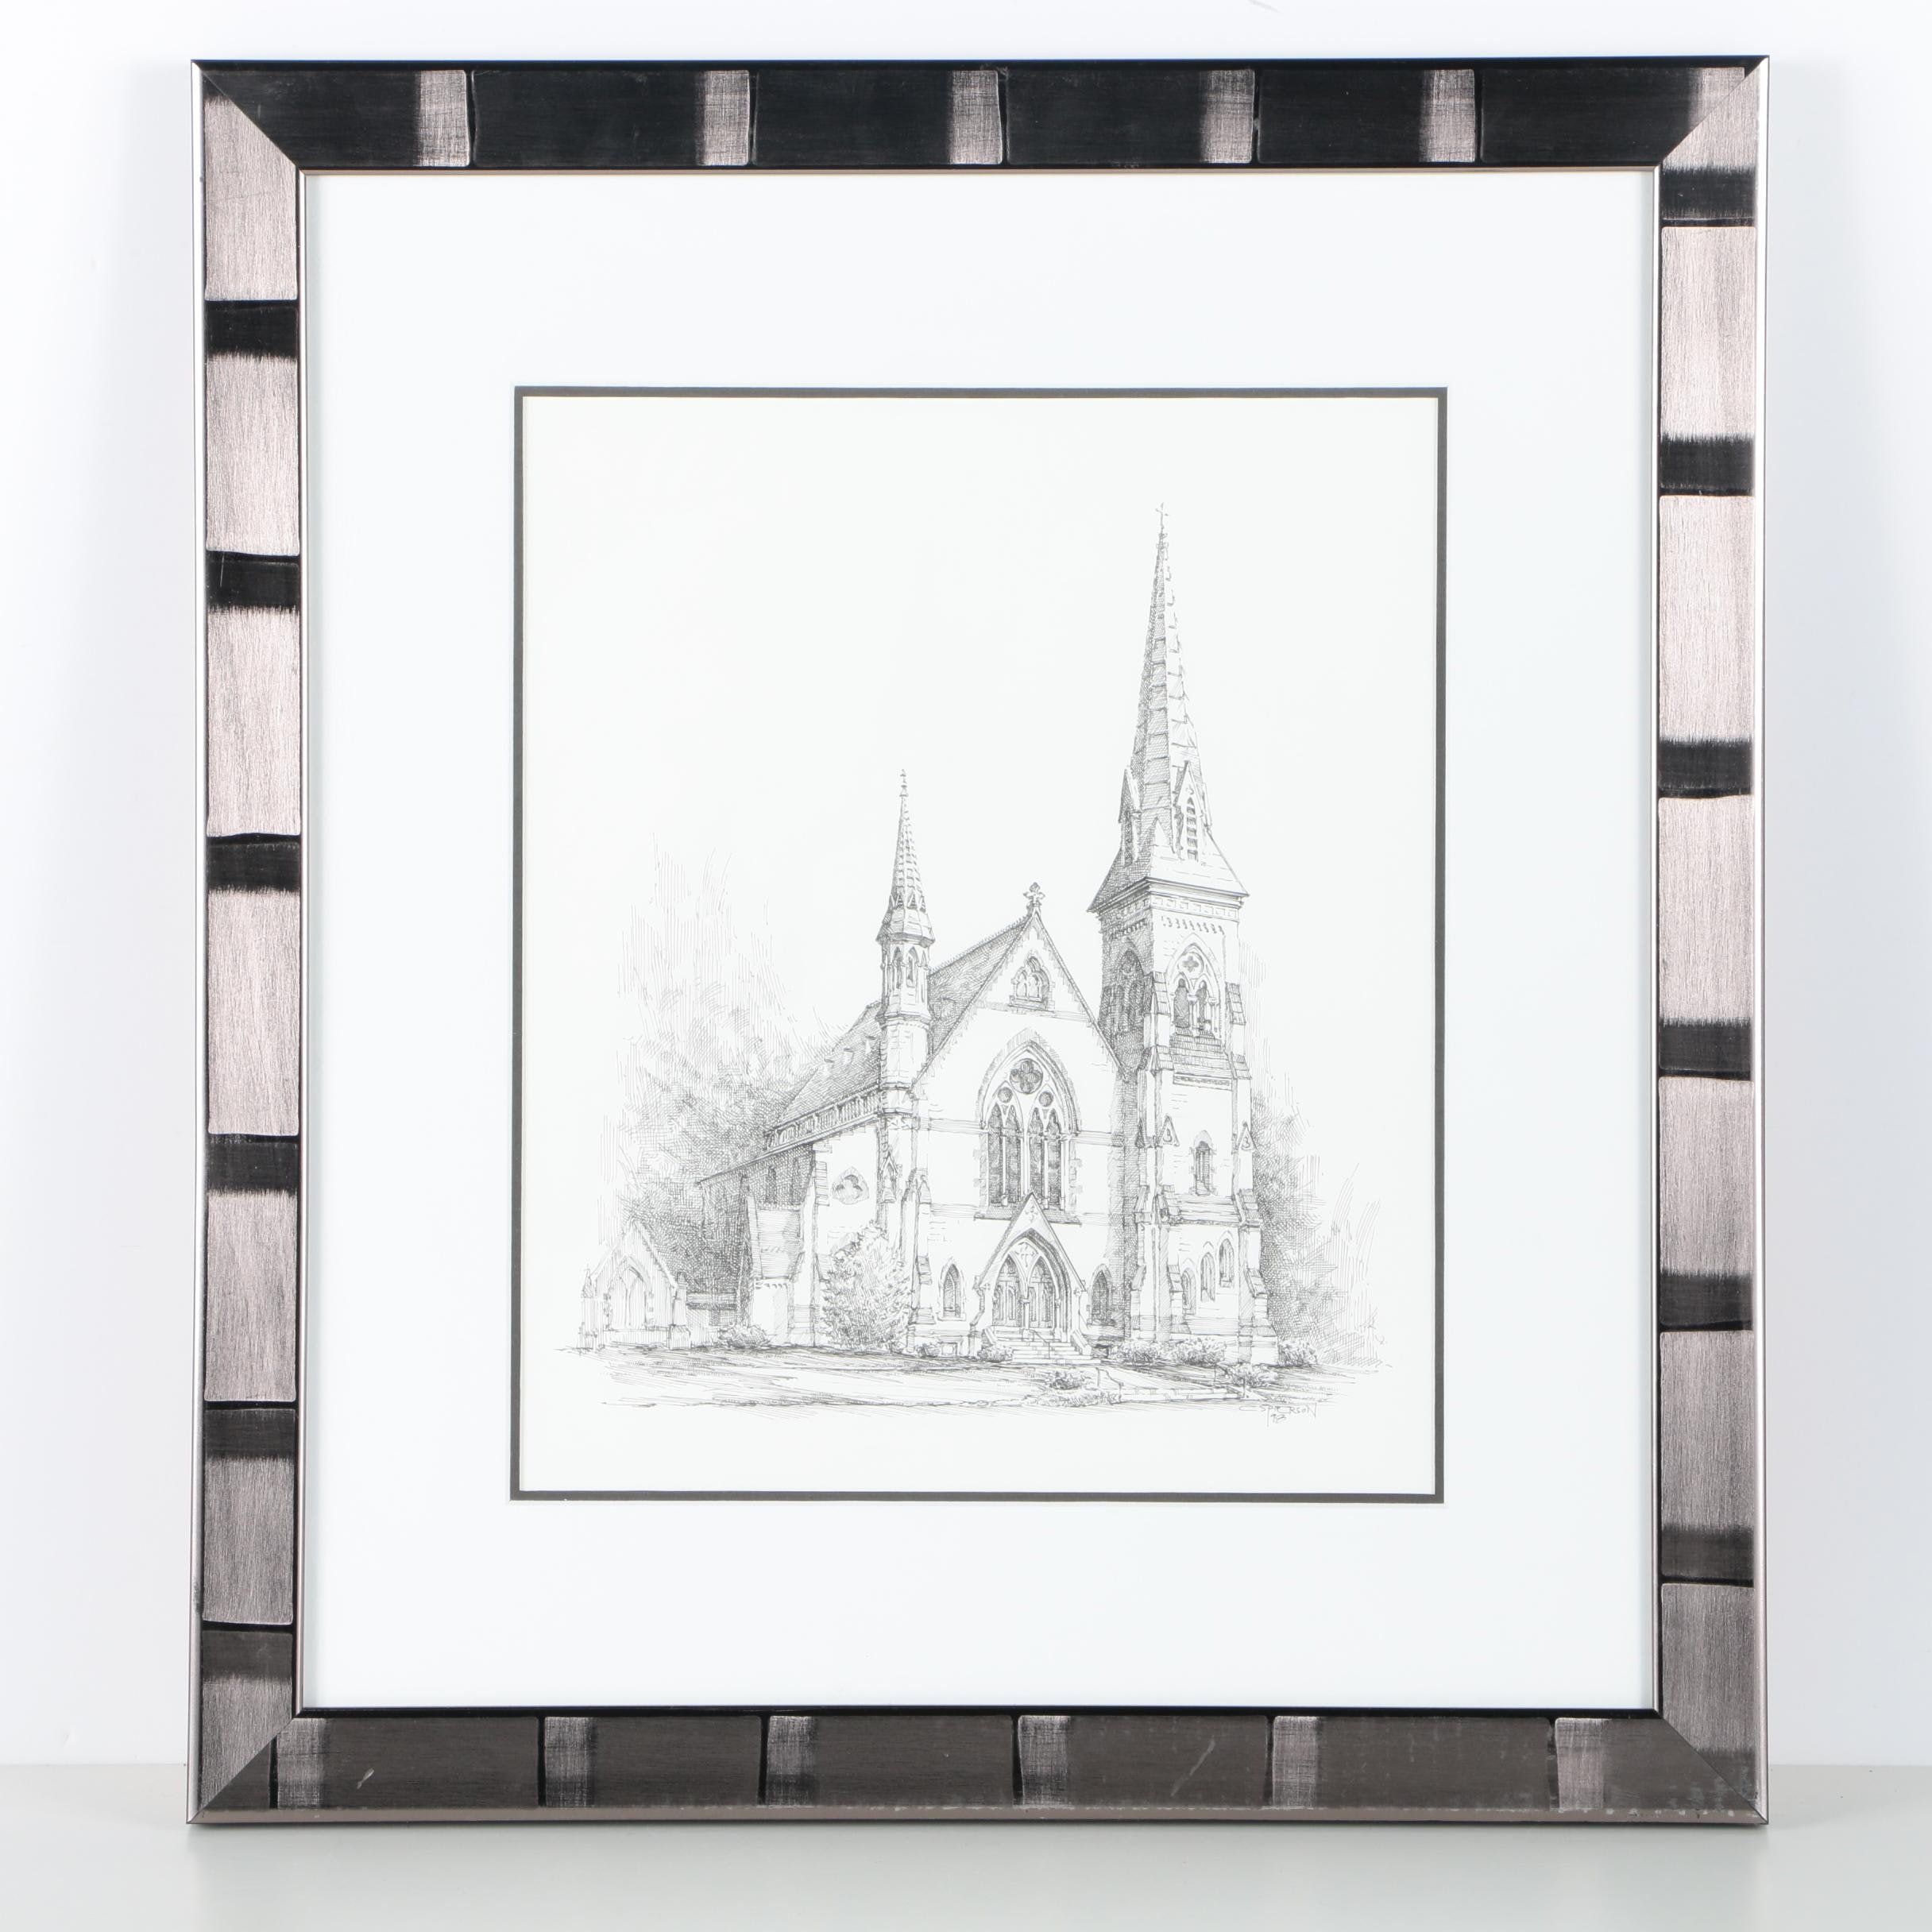 C. Spierson Ink Drawing on Paper of a Church